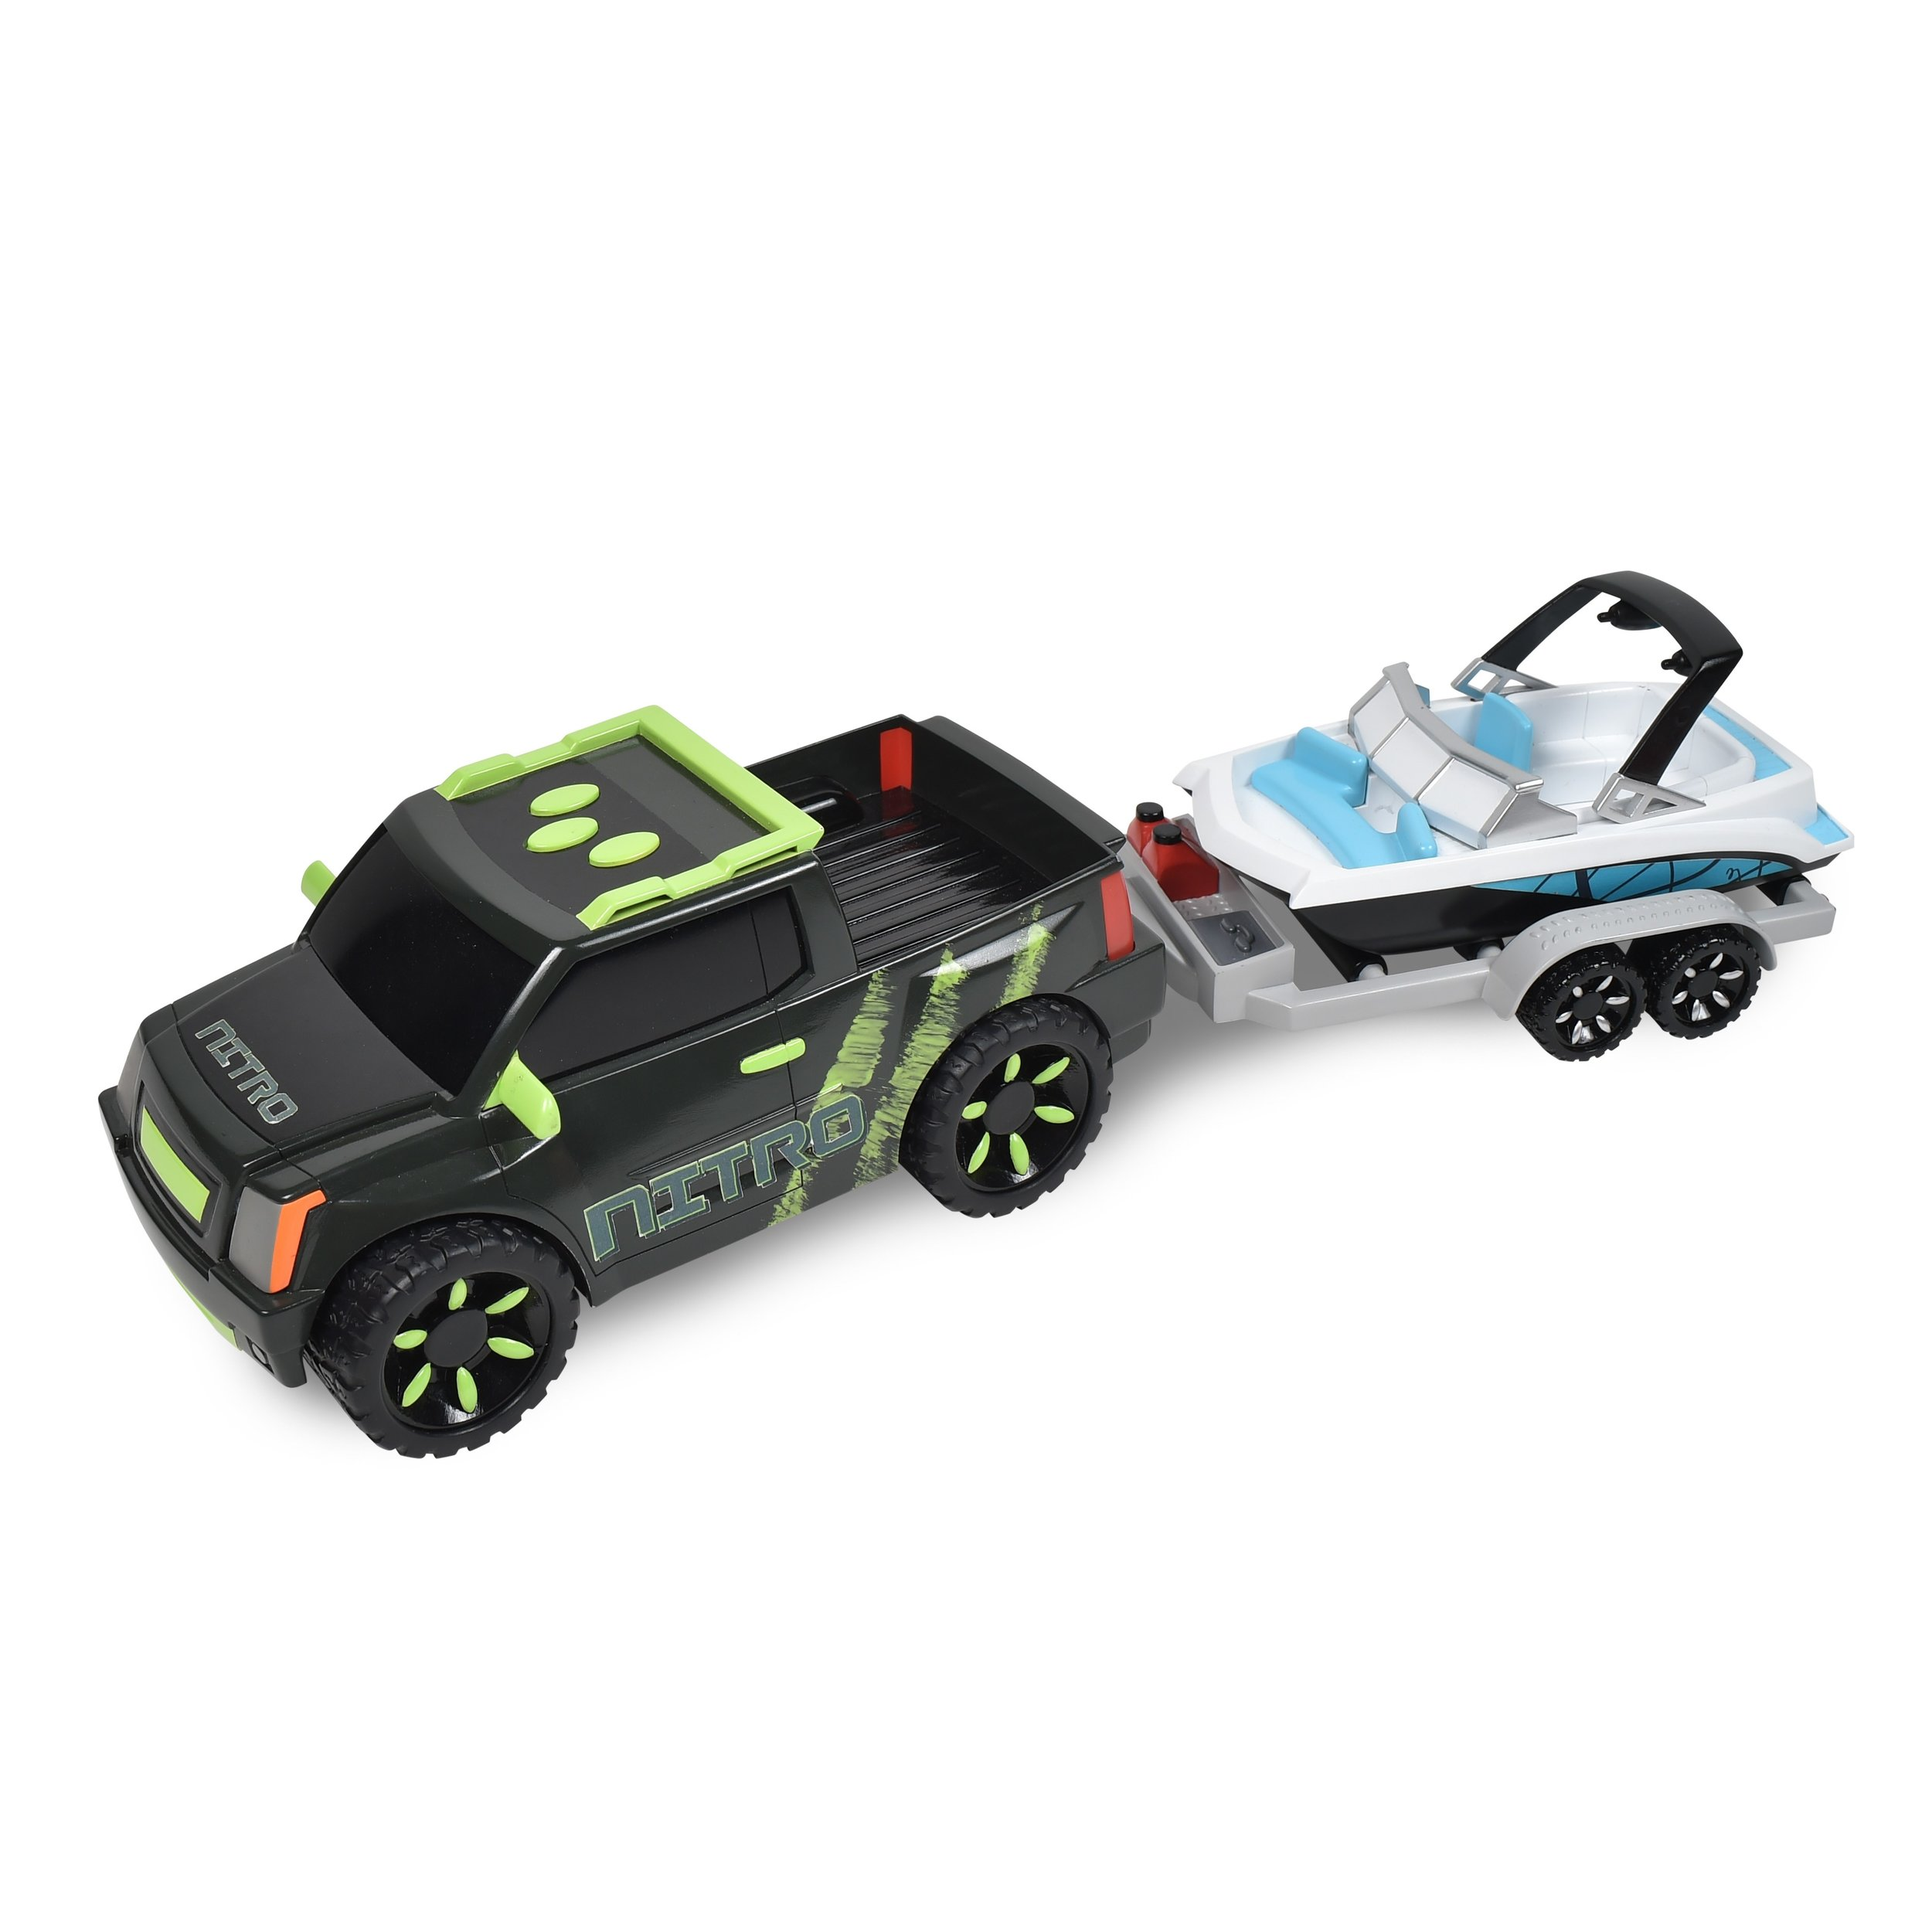 Maxx Action Pickup Truck with Trailer